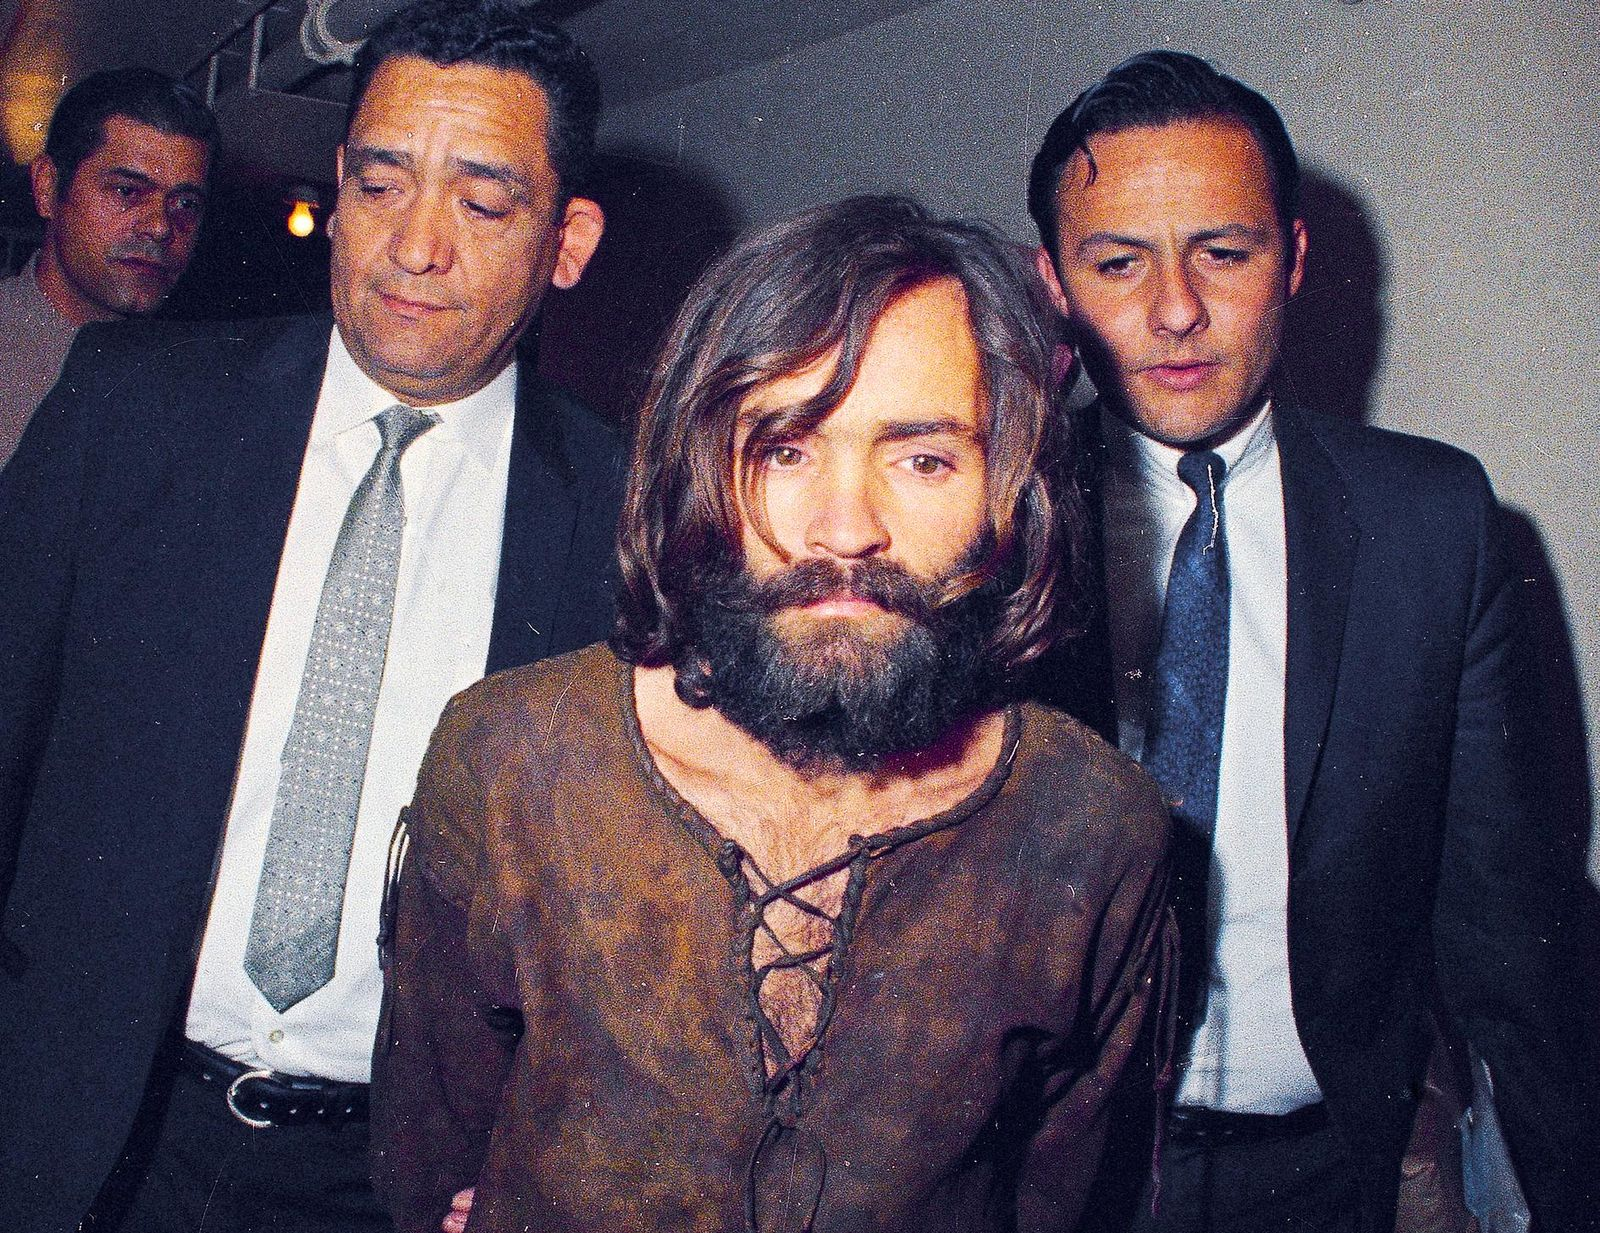 FILE - In this 1969 file photo, Charles Manson is escorted to his arraignment on conspiracy-murder charges in connection with the Sharon Tate murder case in Los Angeles. (AP Photo/File)